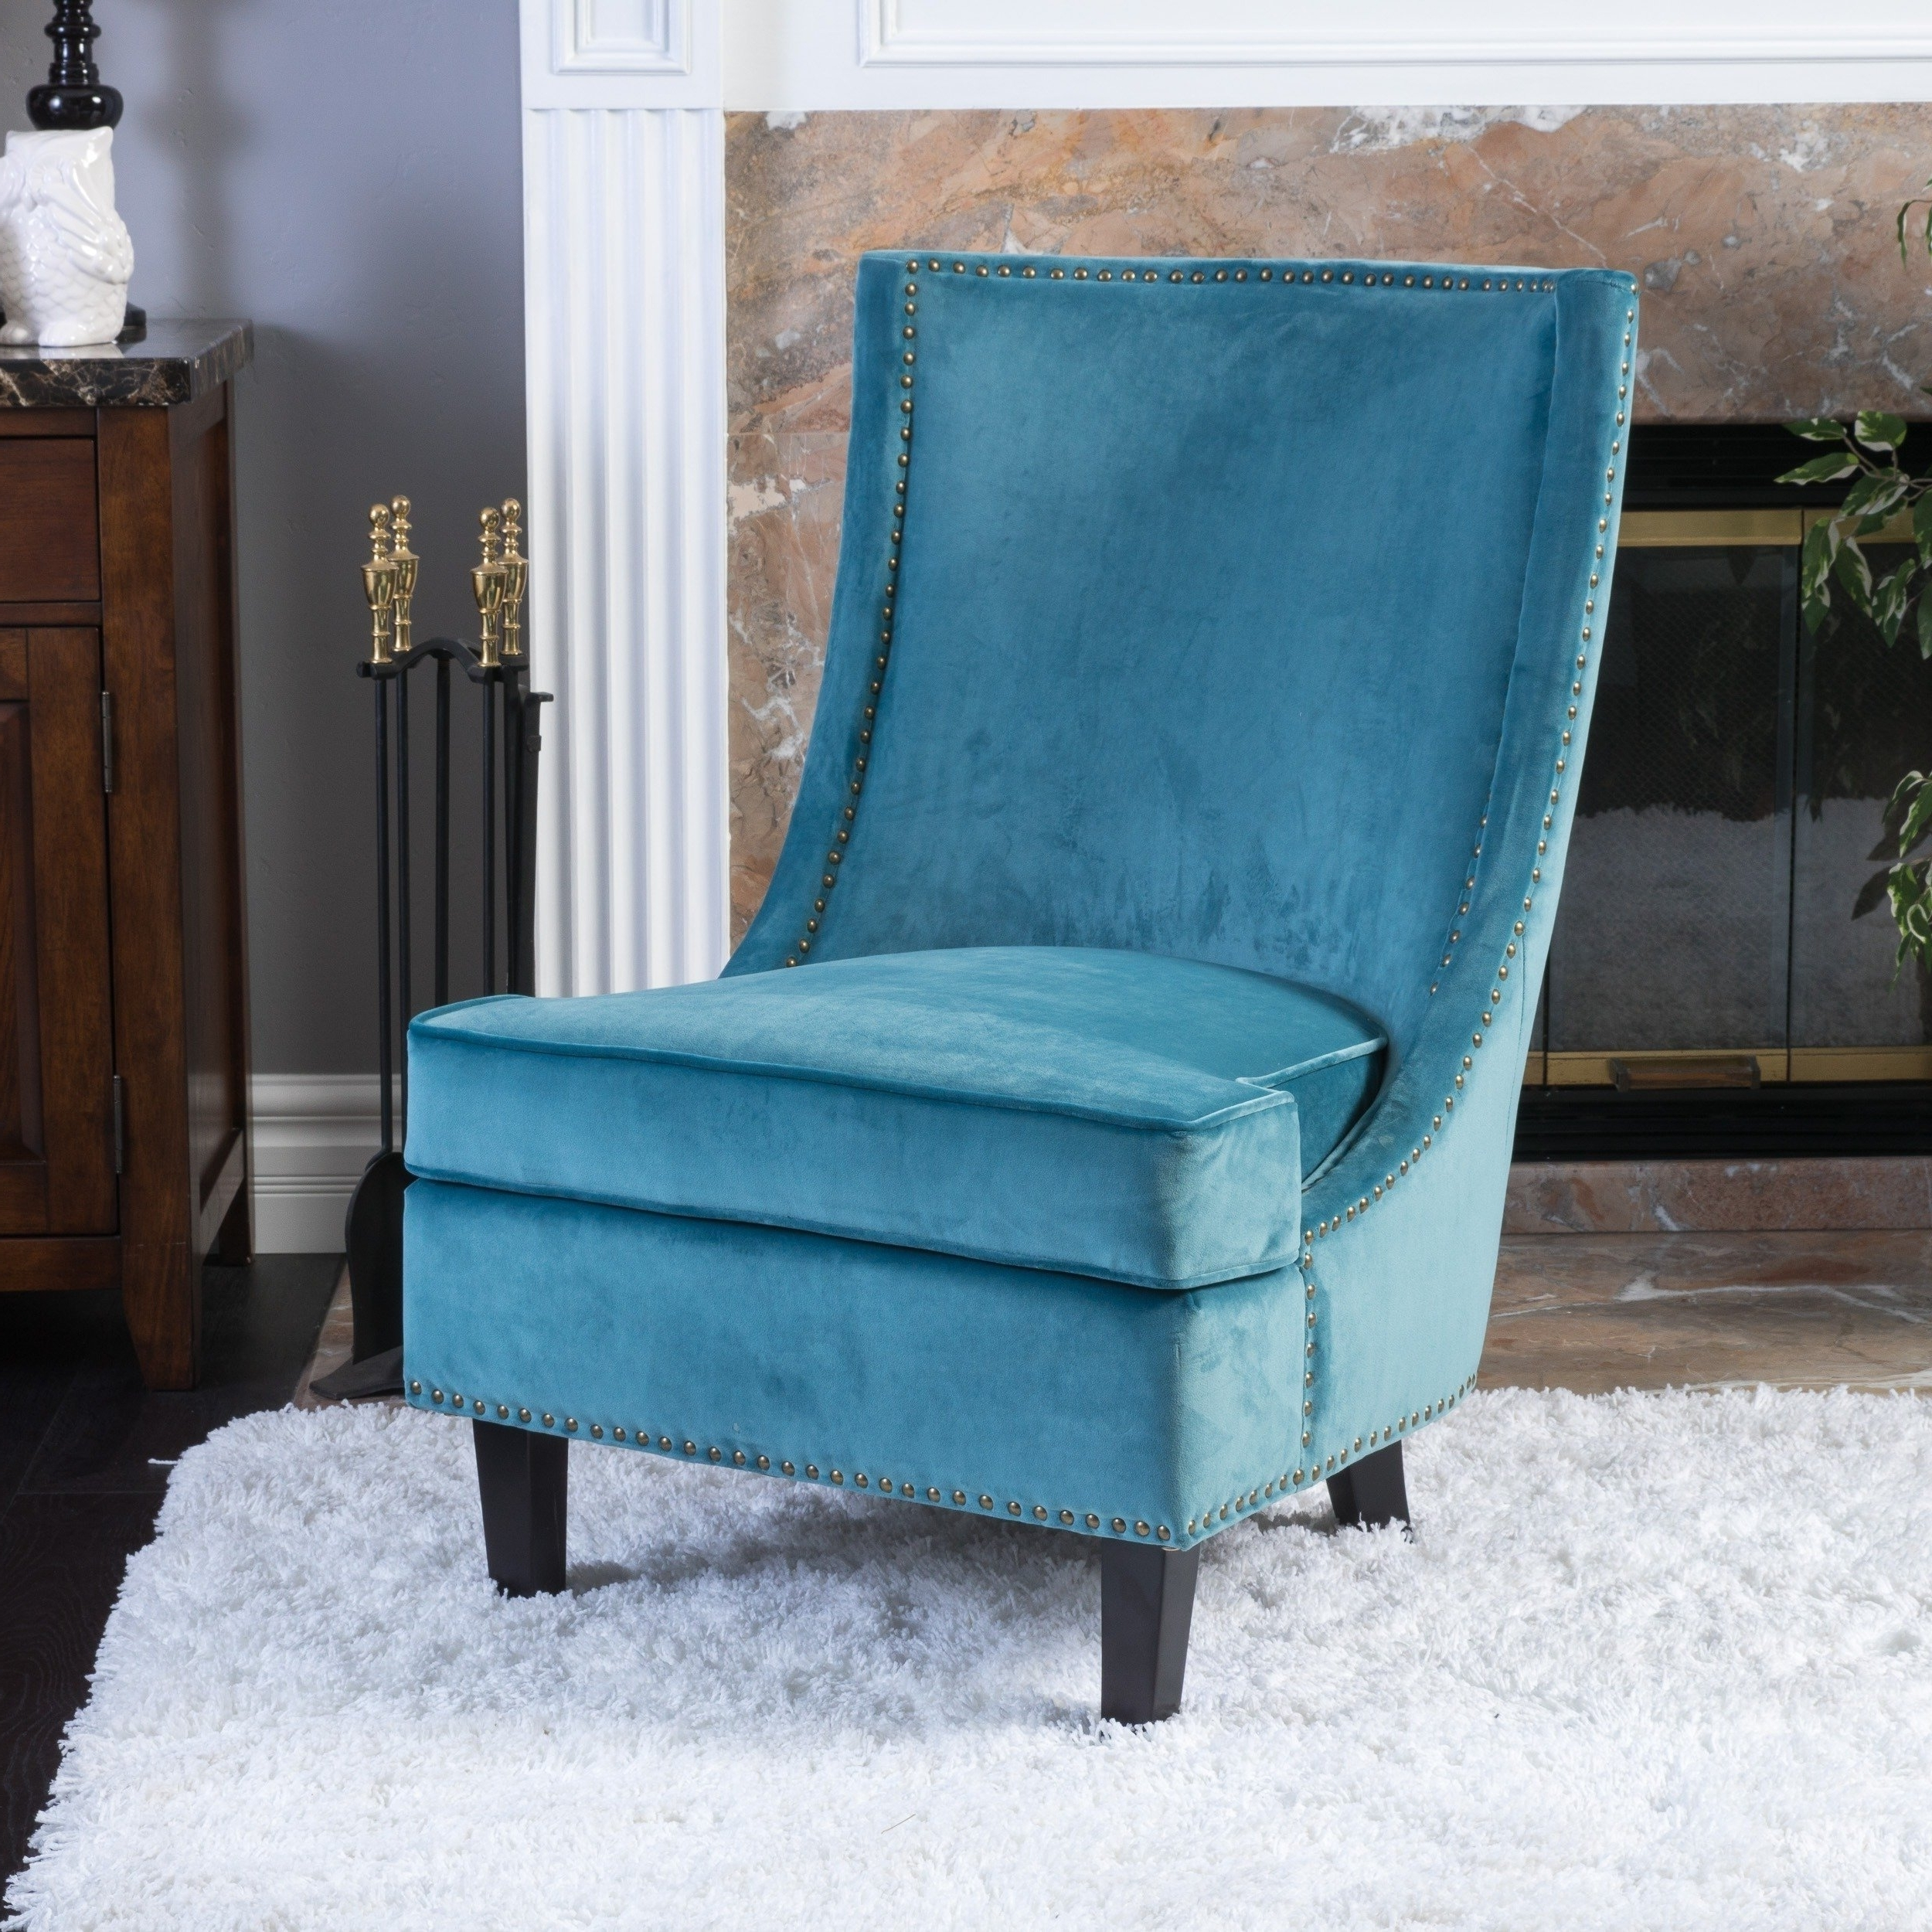 2018 Nautical Blue Side Chairs Throughout Buy Living Room Chairs Online At Overstock (Gallery 12 of 20)